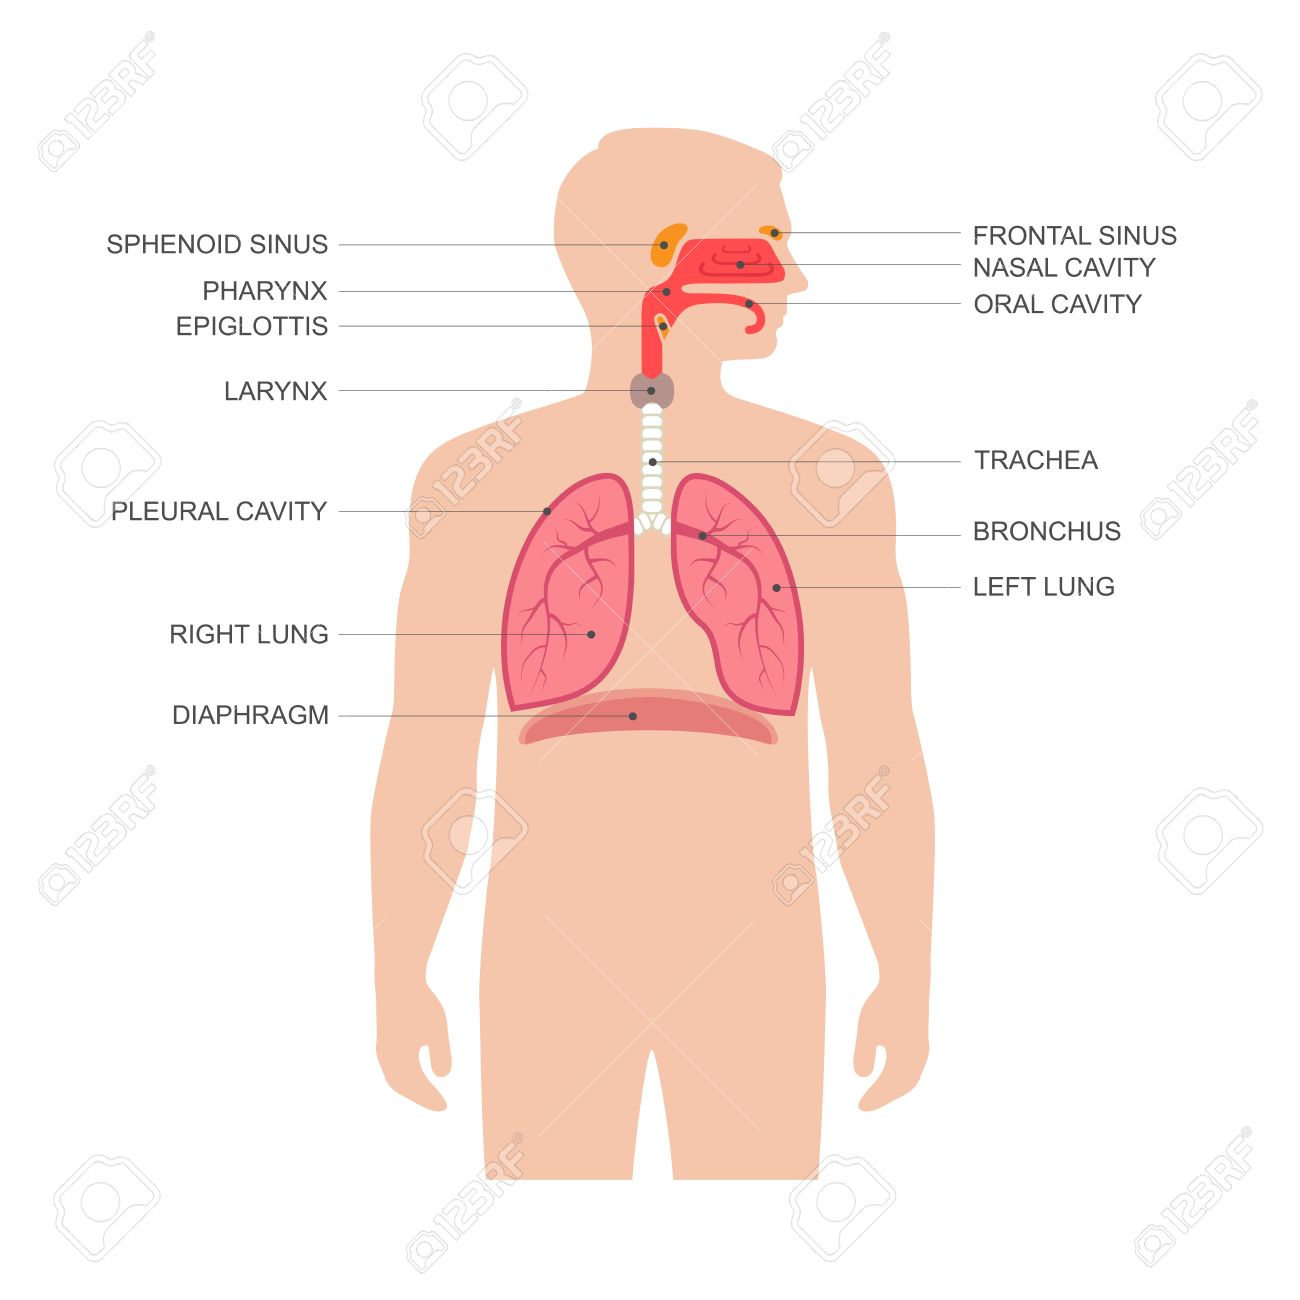 Human Respiratory System Anatomy Vector Illustration Medical Nose